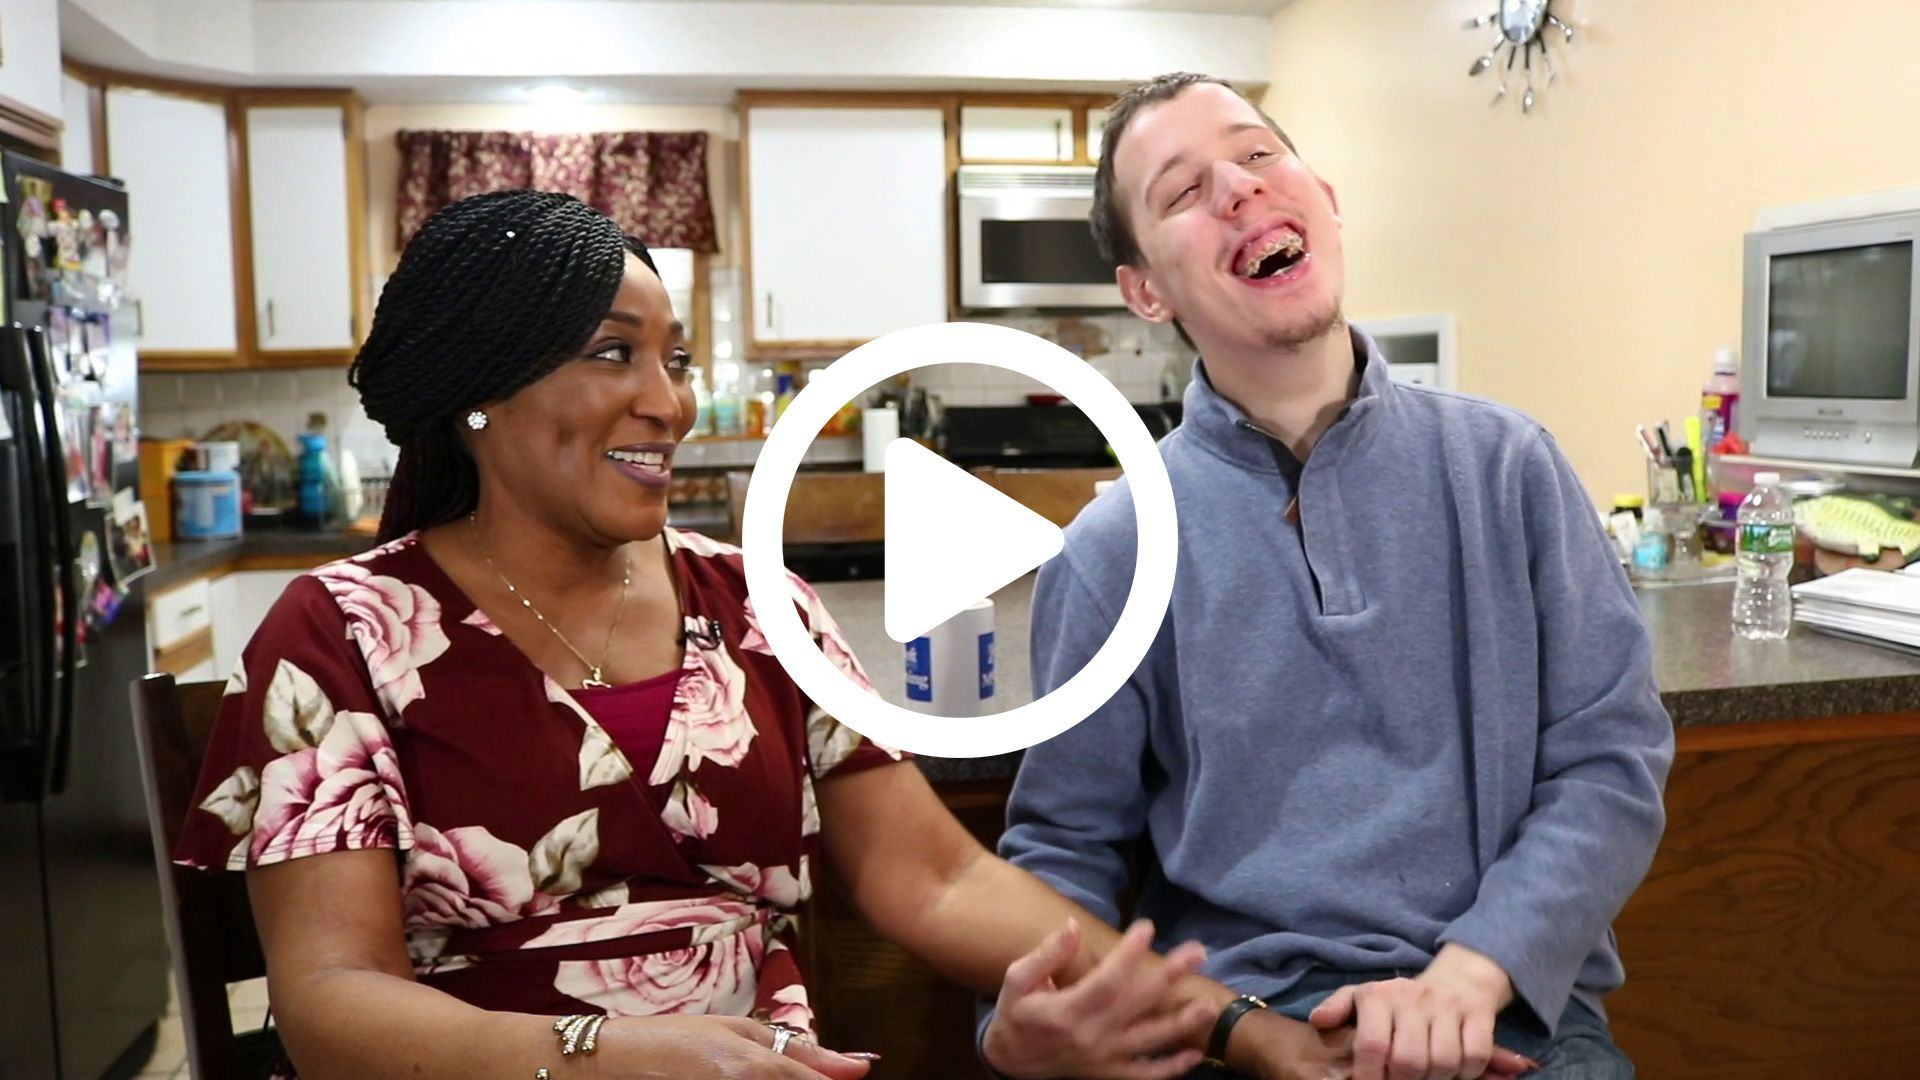 Caregiver Video